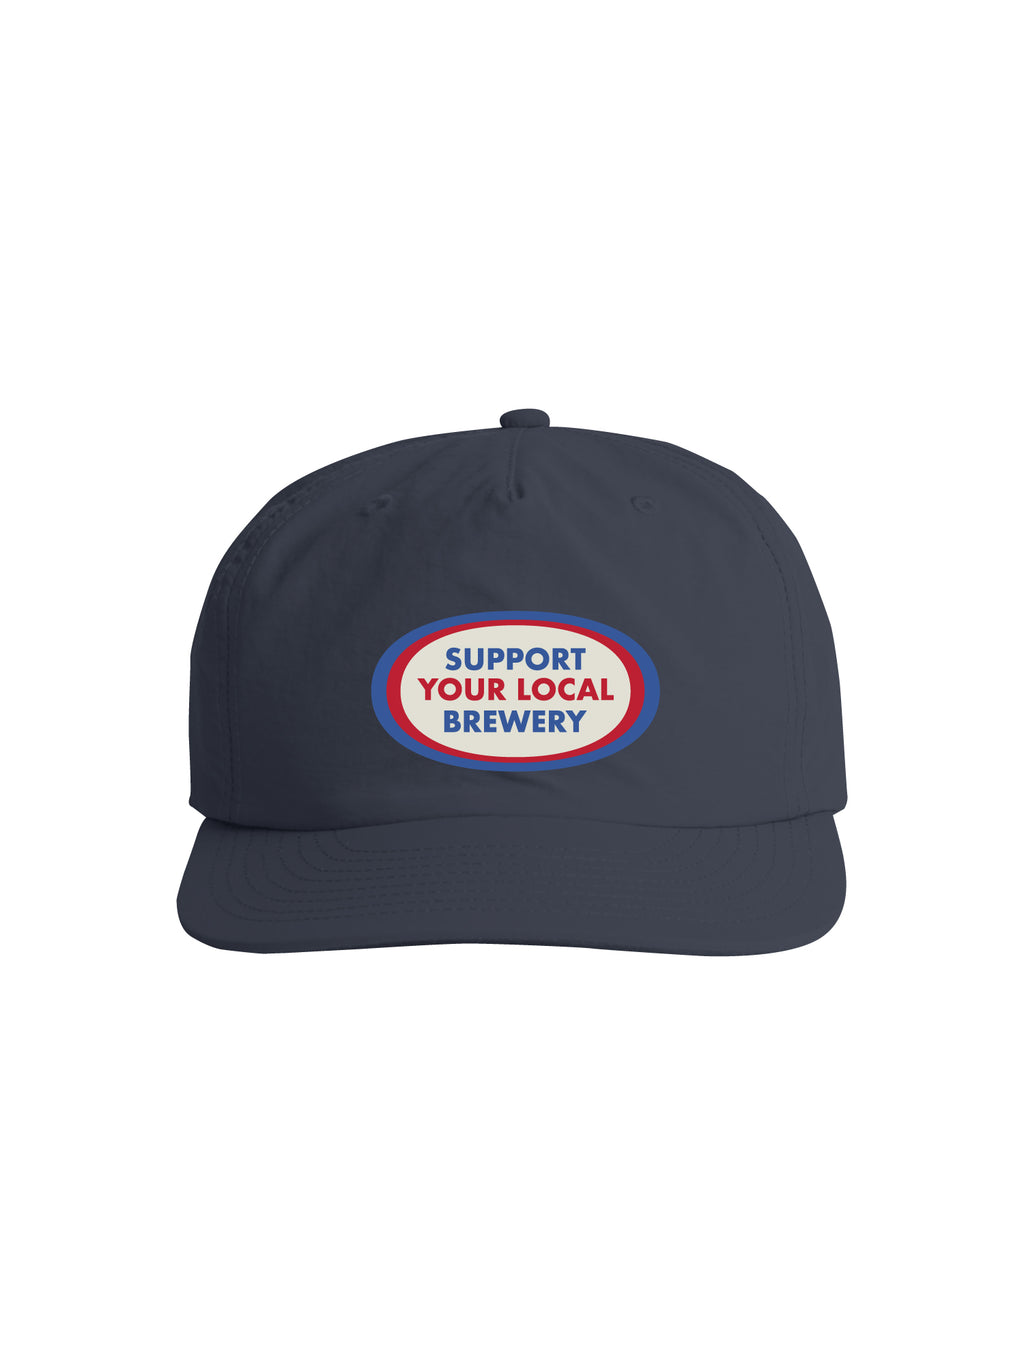 SUPPORT YOUR LOCAL BREWERY SURF CAP - NAVY - Tankfarm & Co.